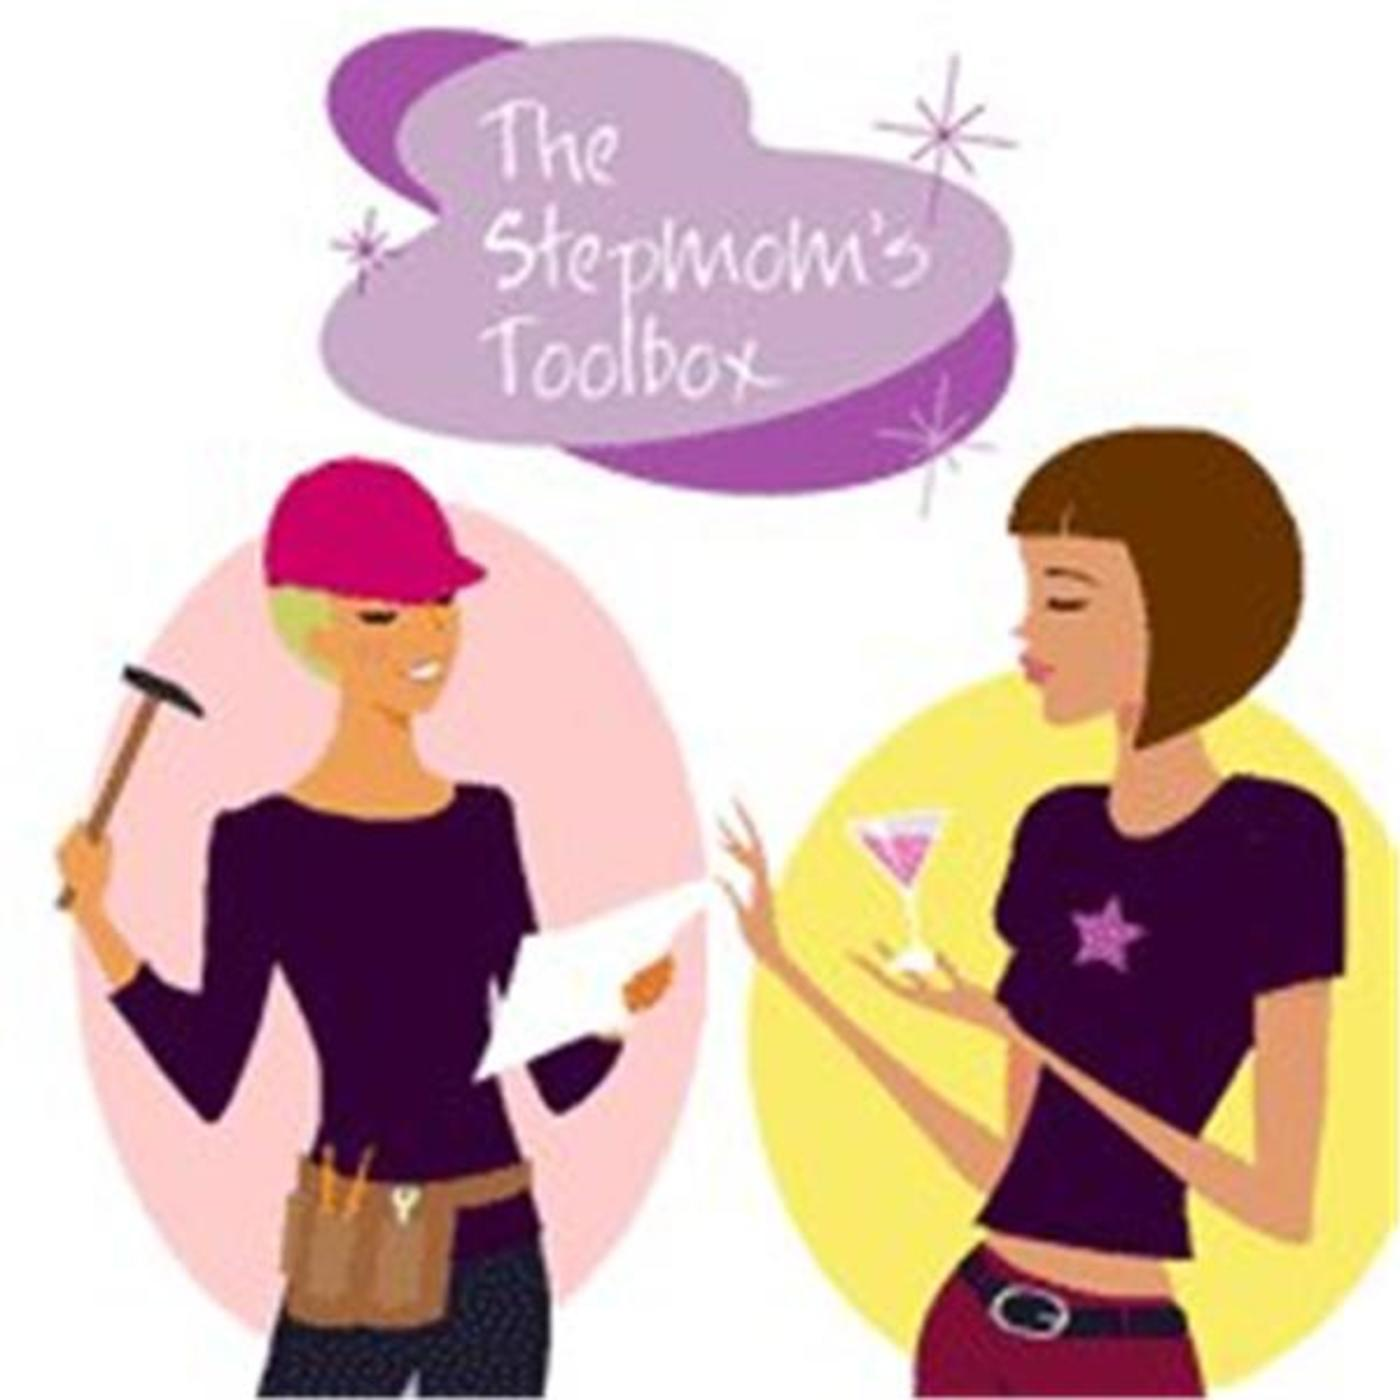 The Stepmom's Toolbox